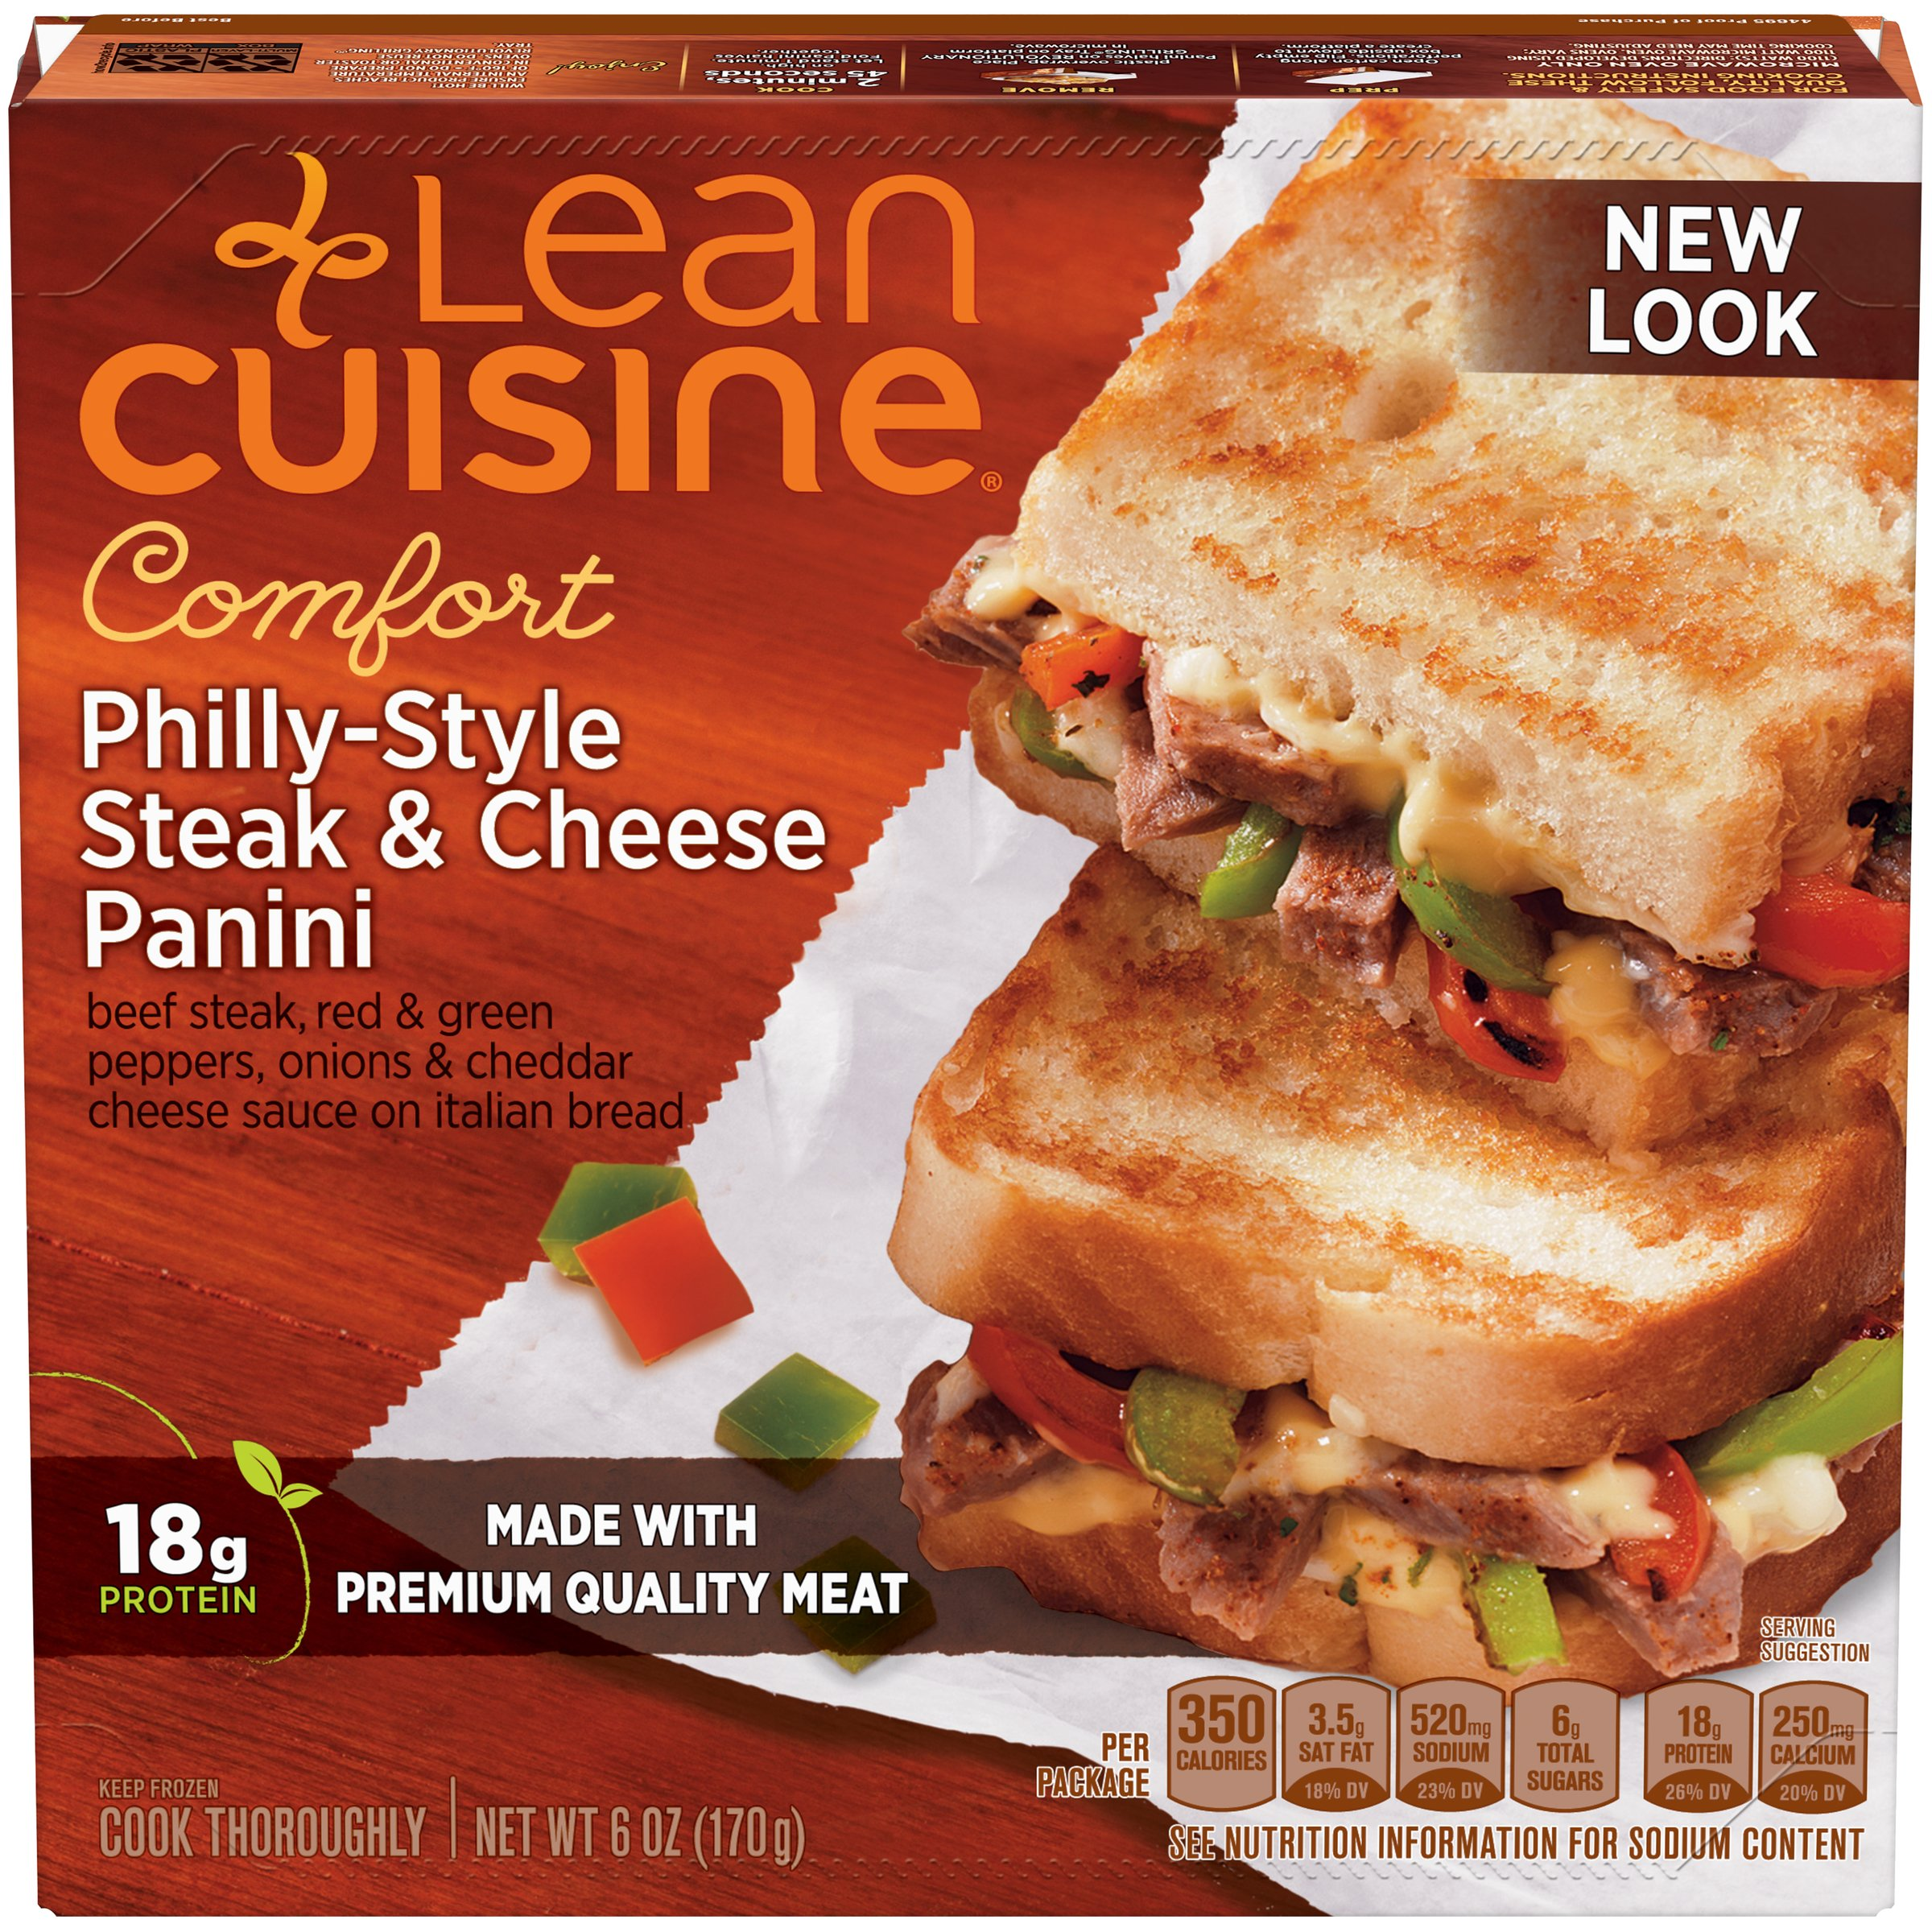 LEAN CUISINE CRAVEABLES Philly-Style Steak & Cheese Panini 6 oz. Box